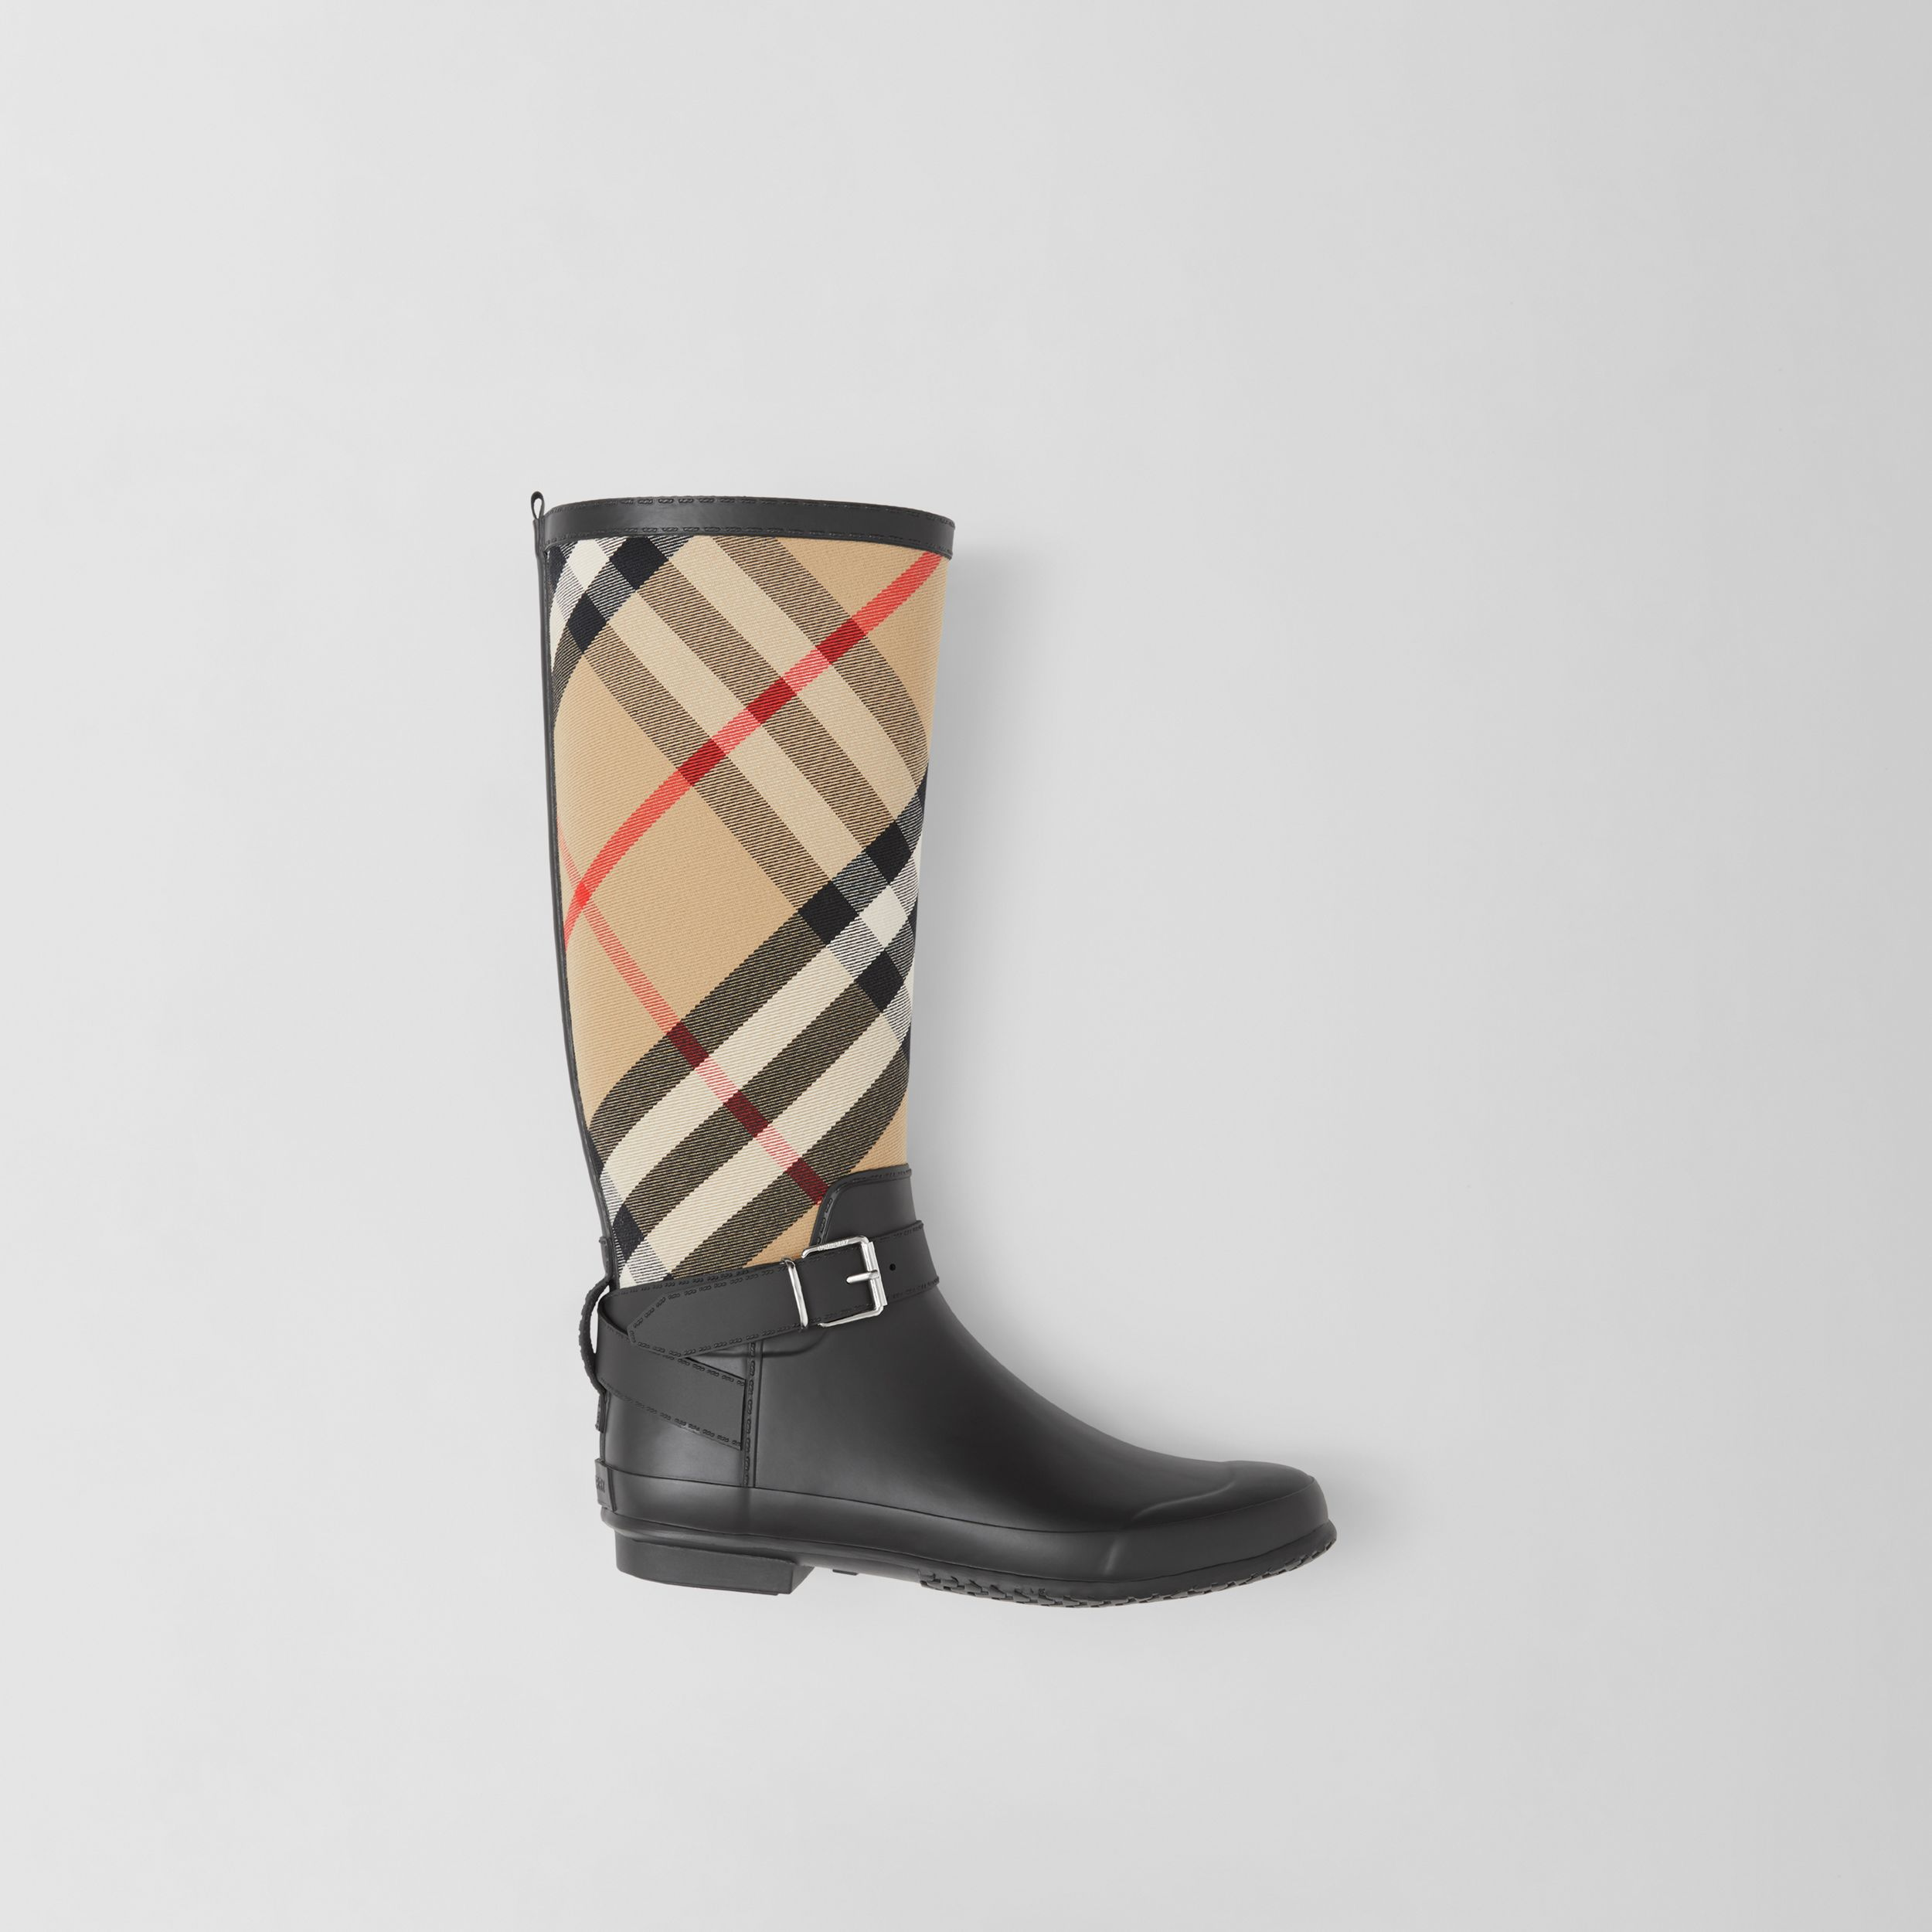 Strap Detail House Check and Rubber Rain Boots in Black/archive Beige - Women | Burberry - 1